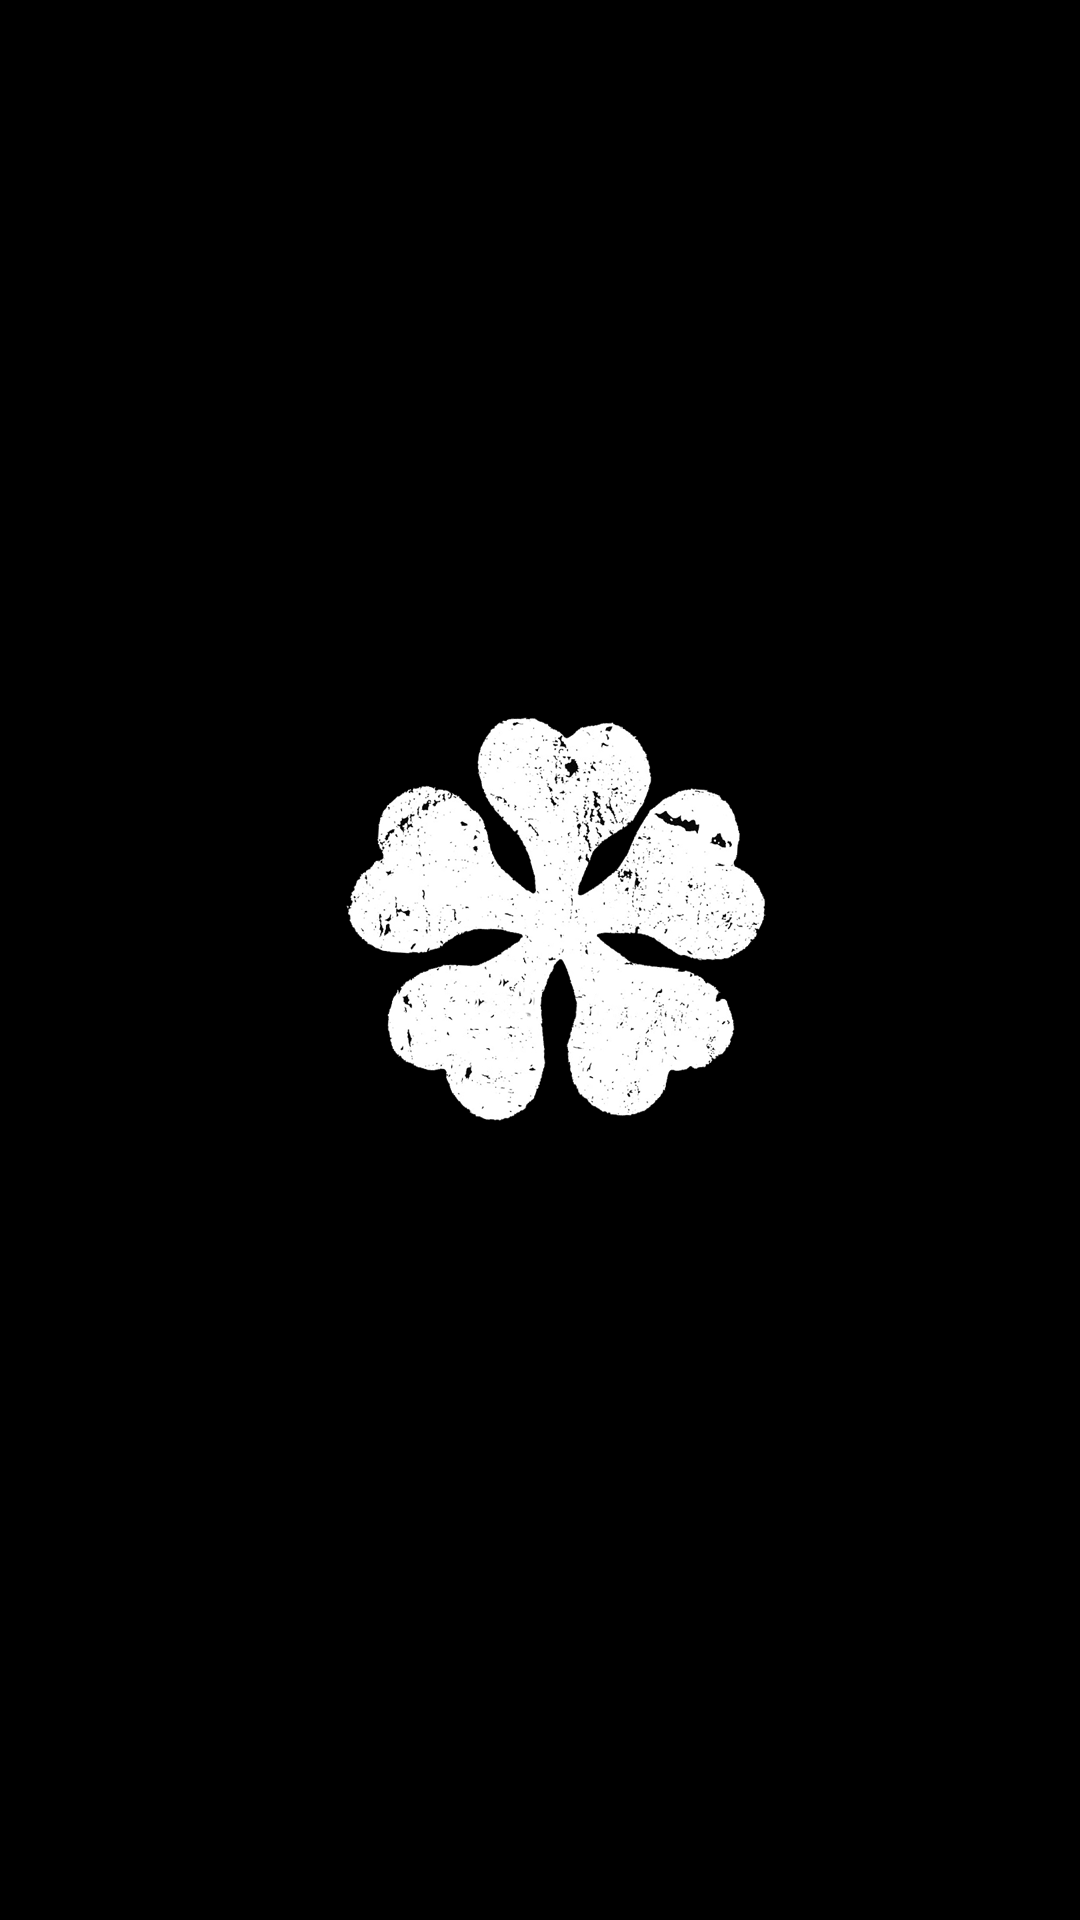 You can make this wallpaper for your desktop computer. Get Wallpaper Anime Black Clover Hd Android Images - jasmanime